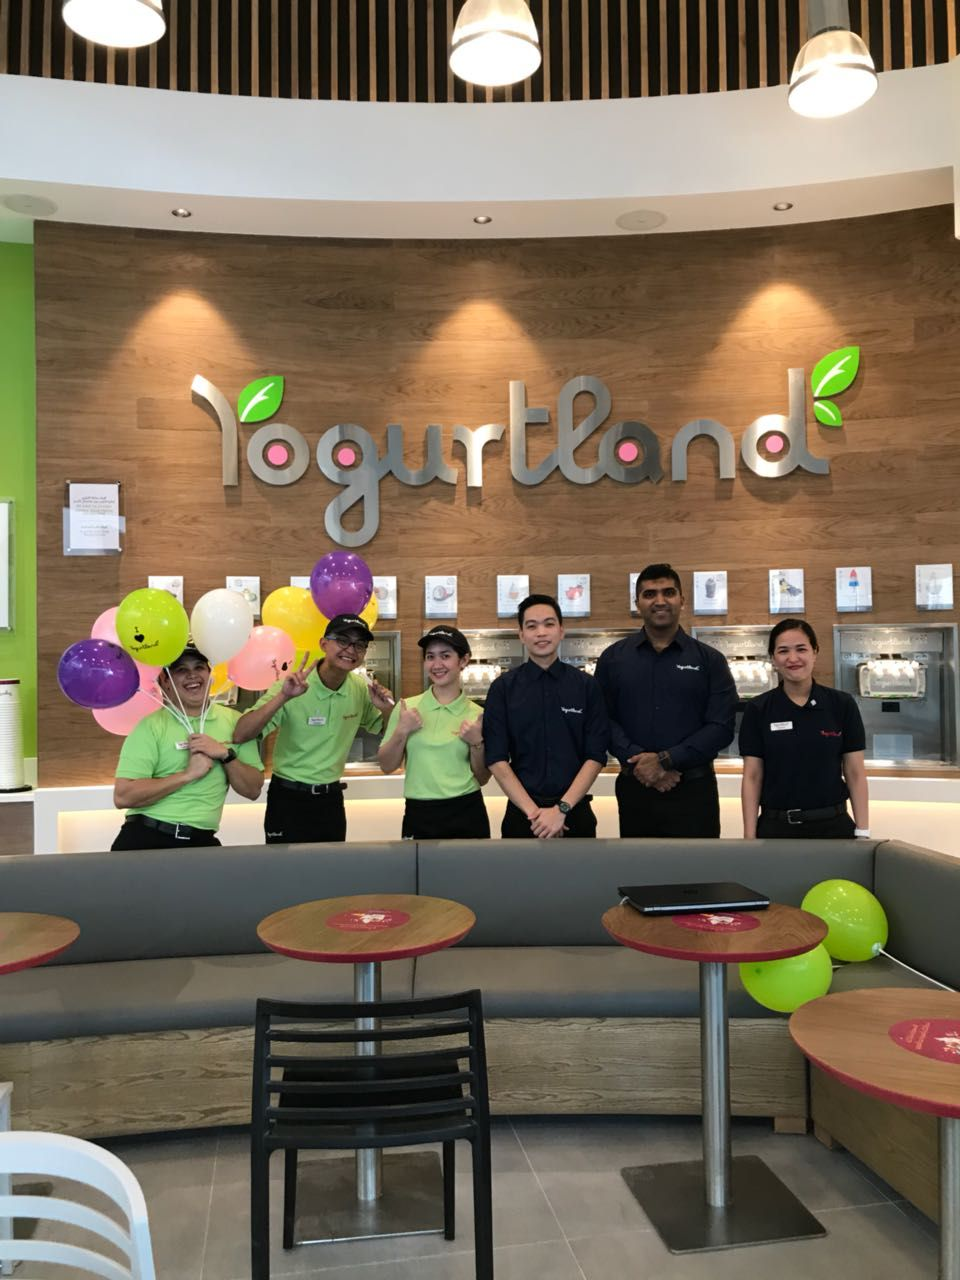 Yogurtland Expands International Presence